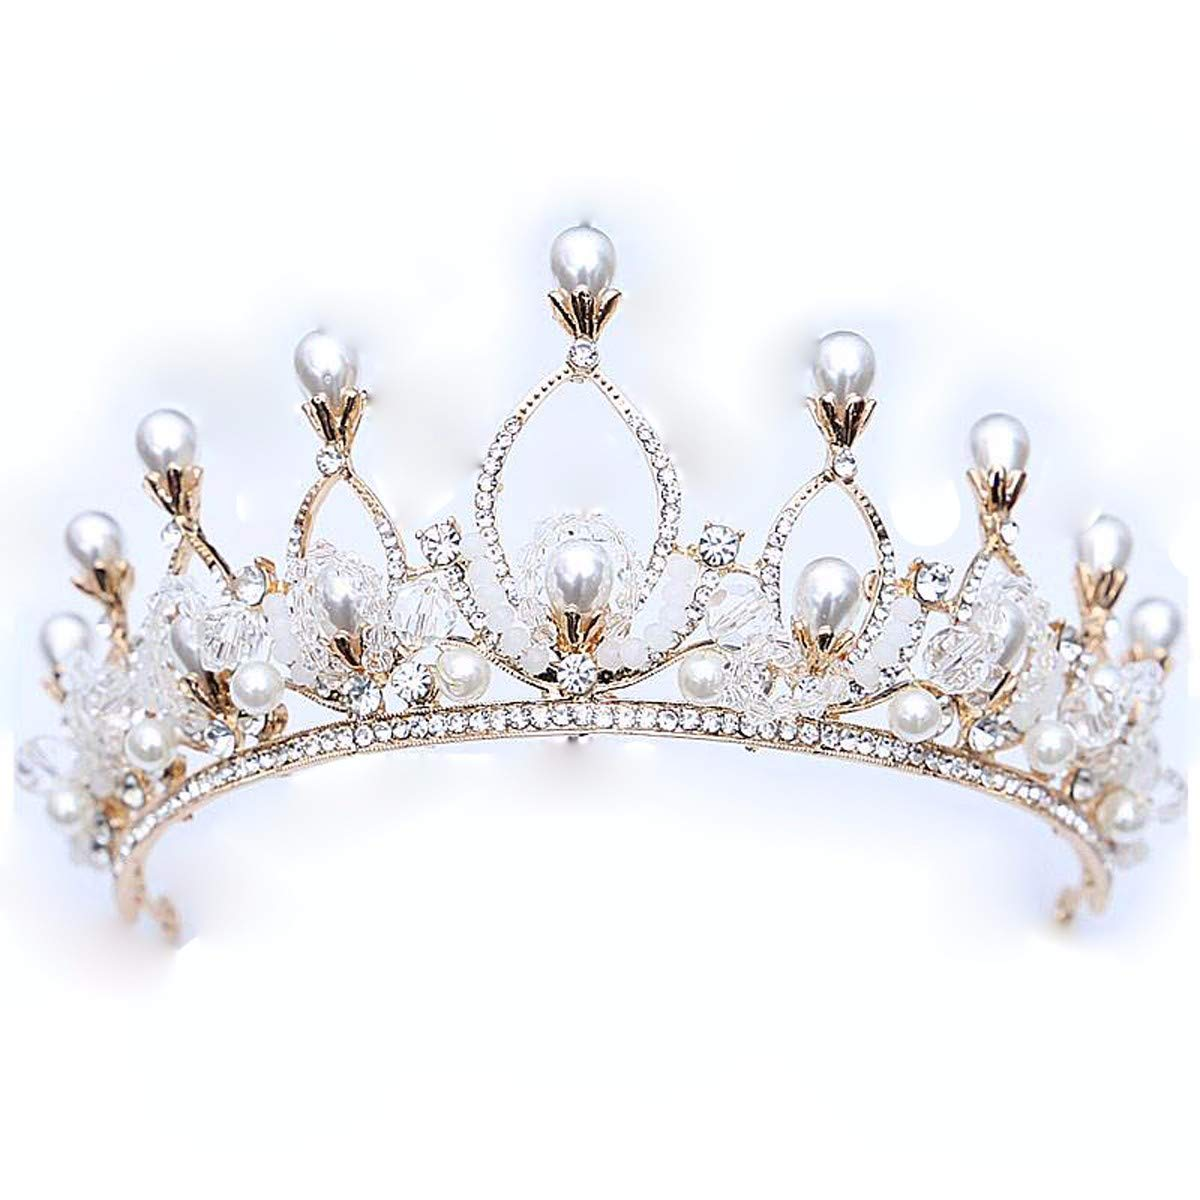 Wedding Crown, Luxurious atmosphere bride pearl crown dress wedding Wedding Necklace accessories by Junson (Image #1)